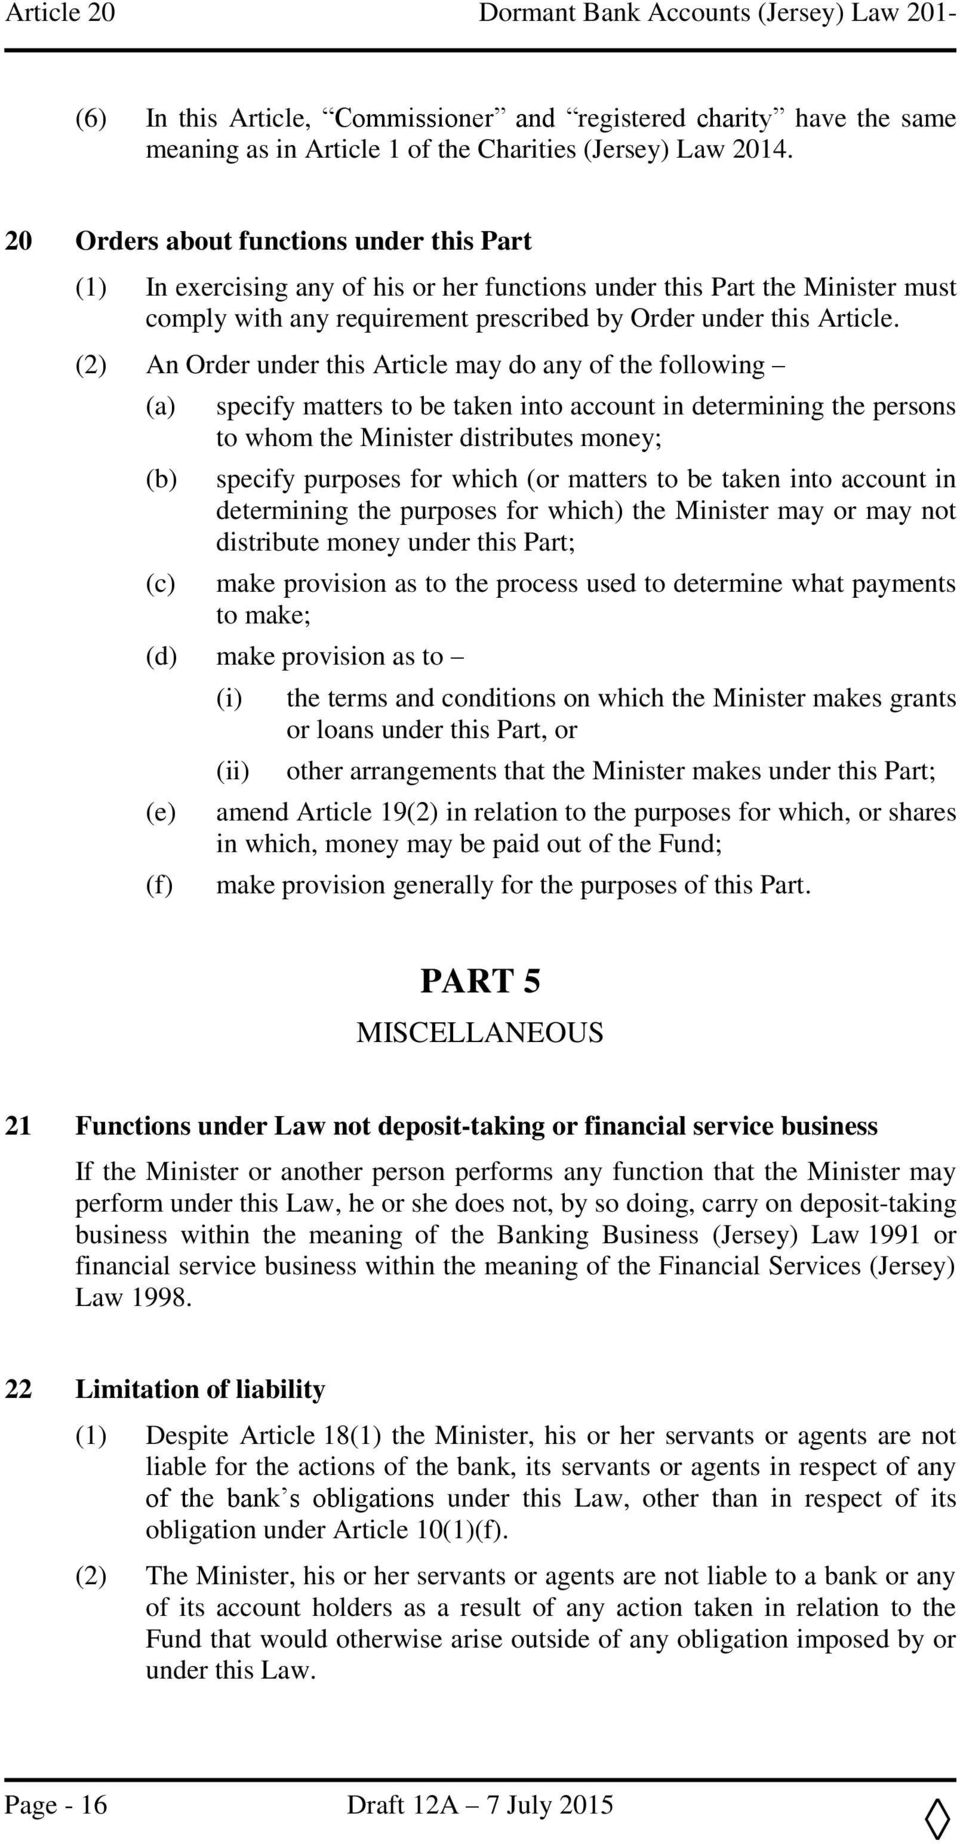 (2) An Order under this Article may do any of the following specify matters to be taken into account in determining the persons to whom the Minister distributes money; specify purposes for which (or